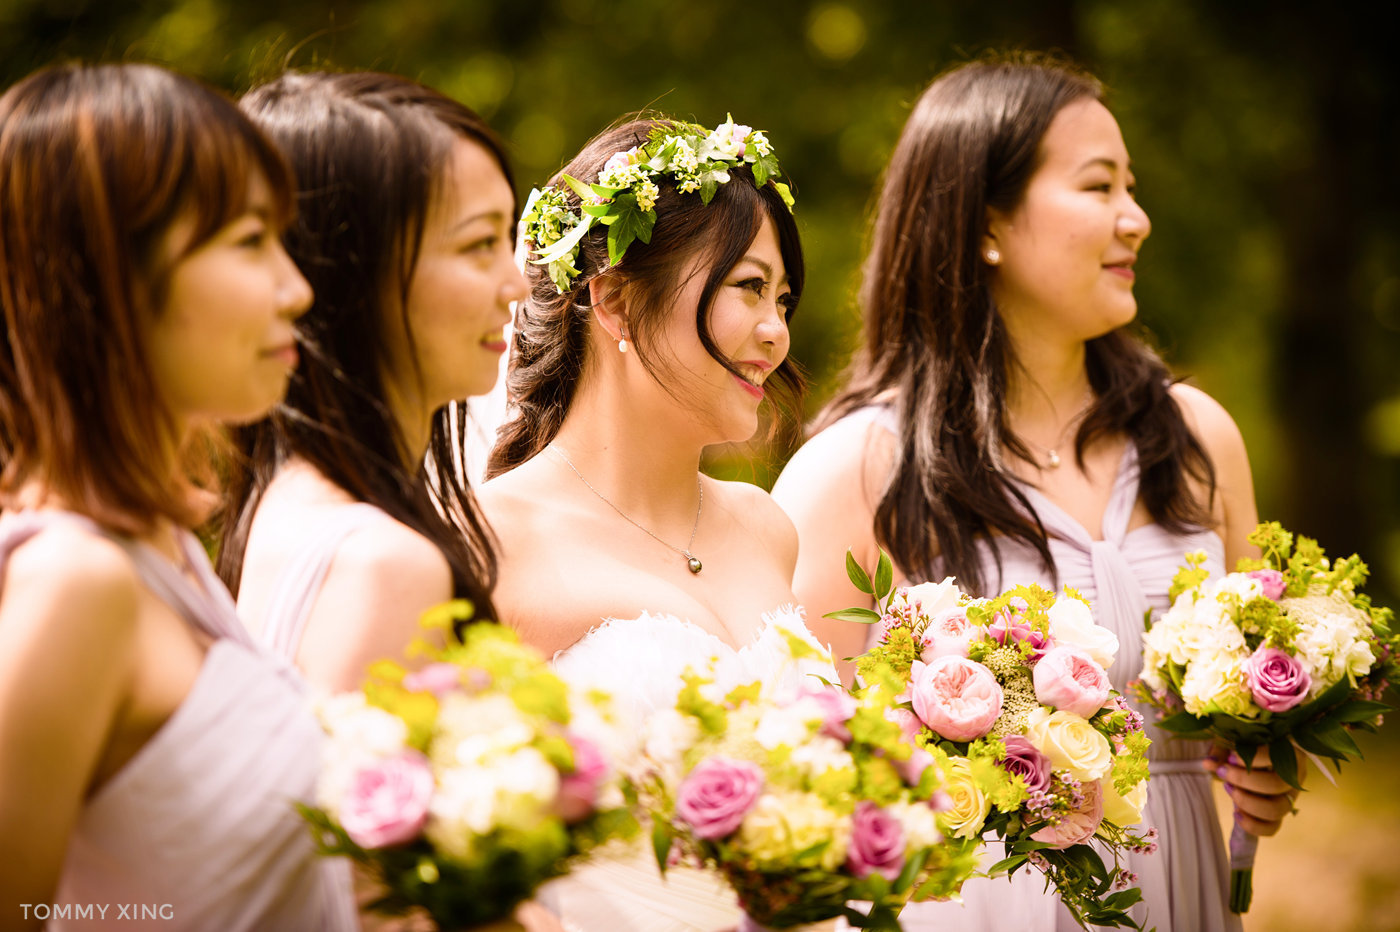 Seattle Wedding and pre wedding Los Angeles Tommy Xing Photography 西雅图洛杉矶旧金山婚礼婚纱照摄影师 110.jpg